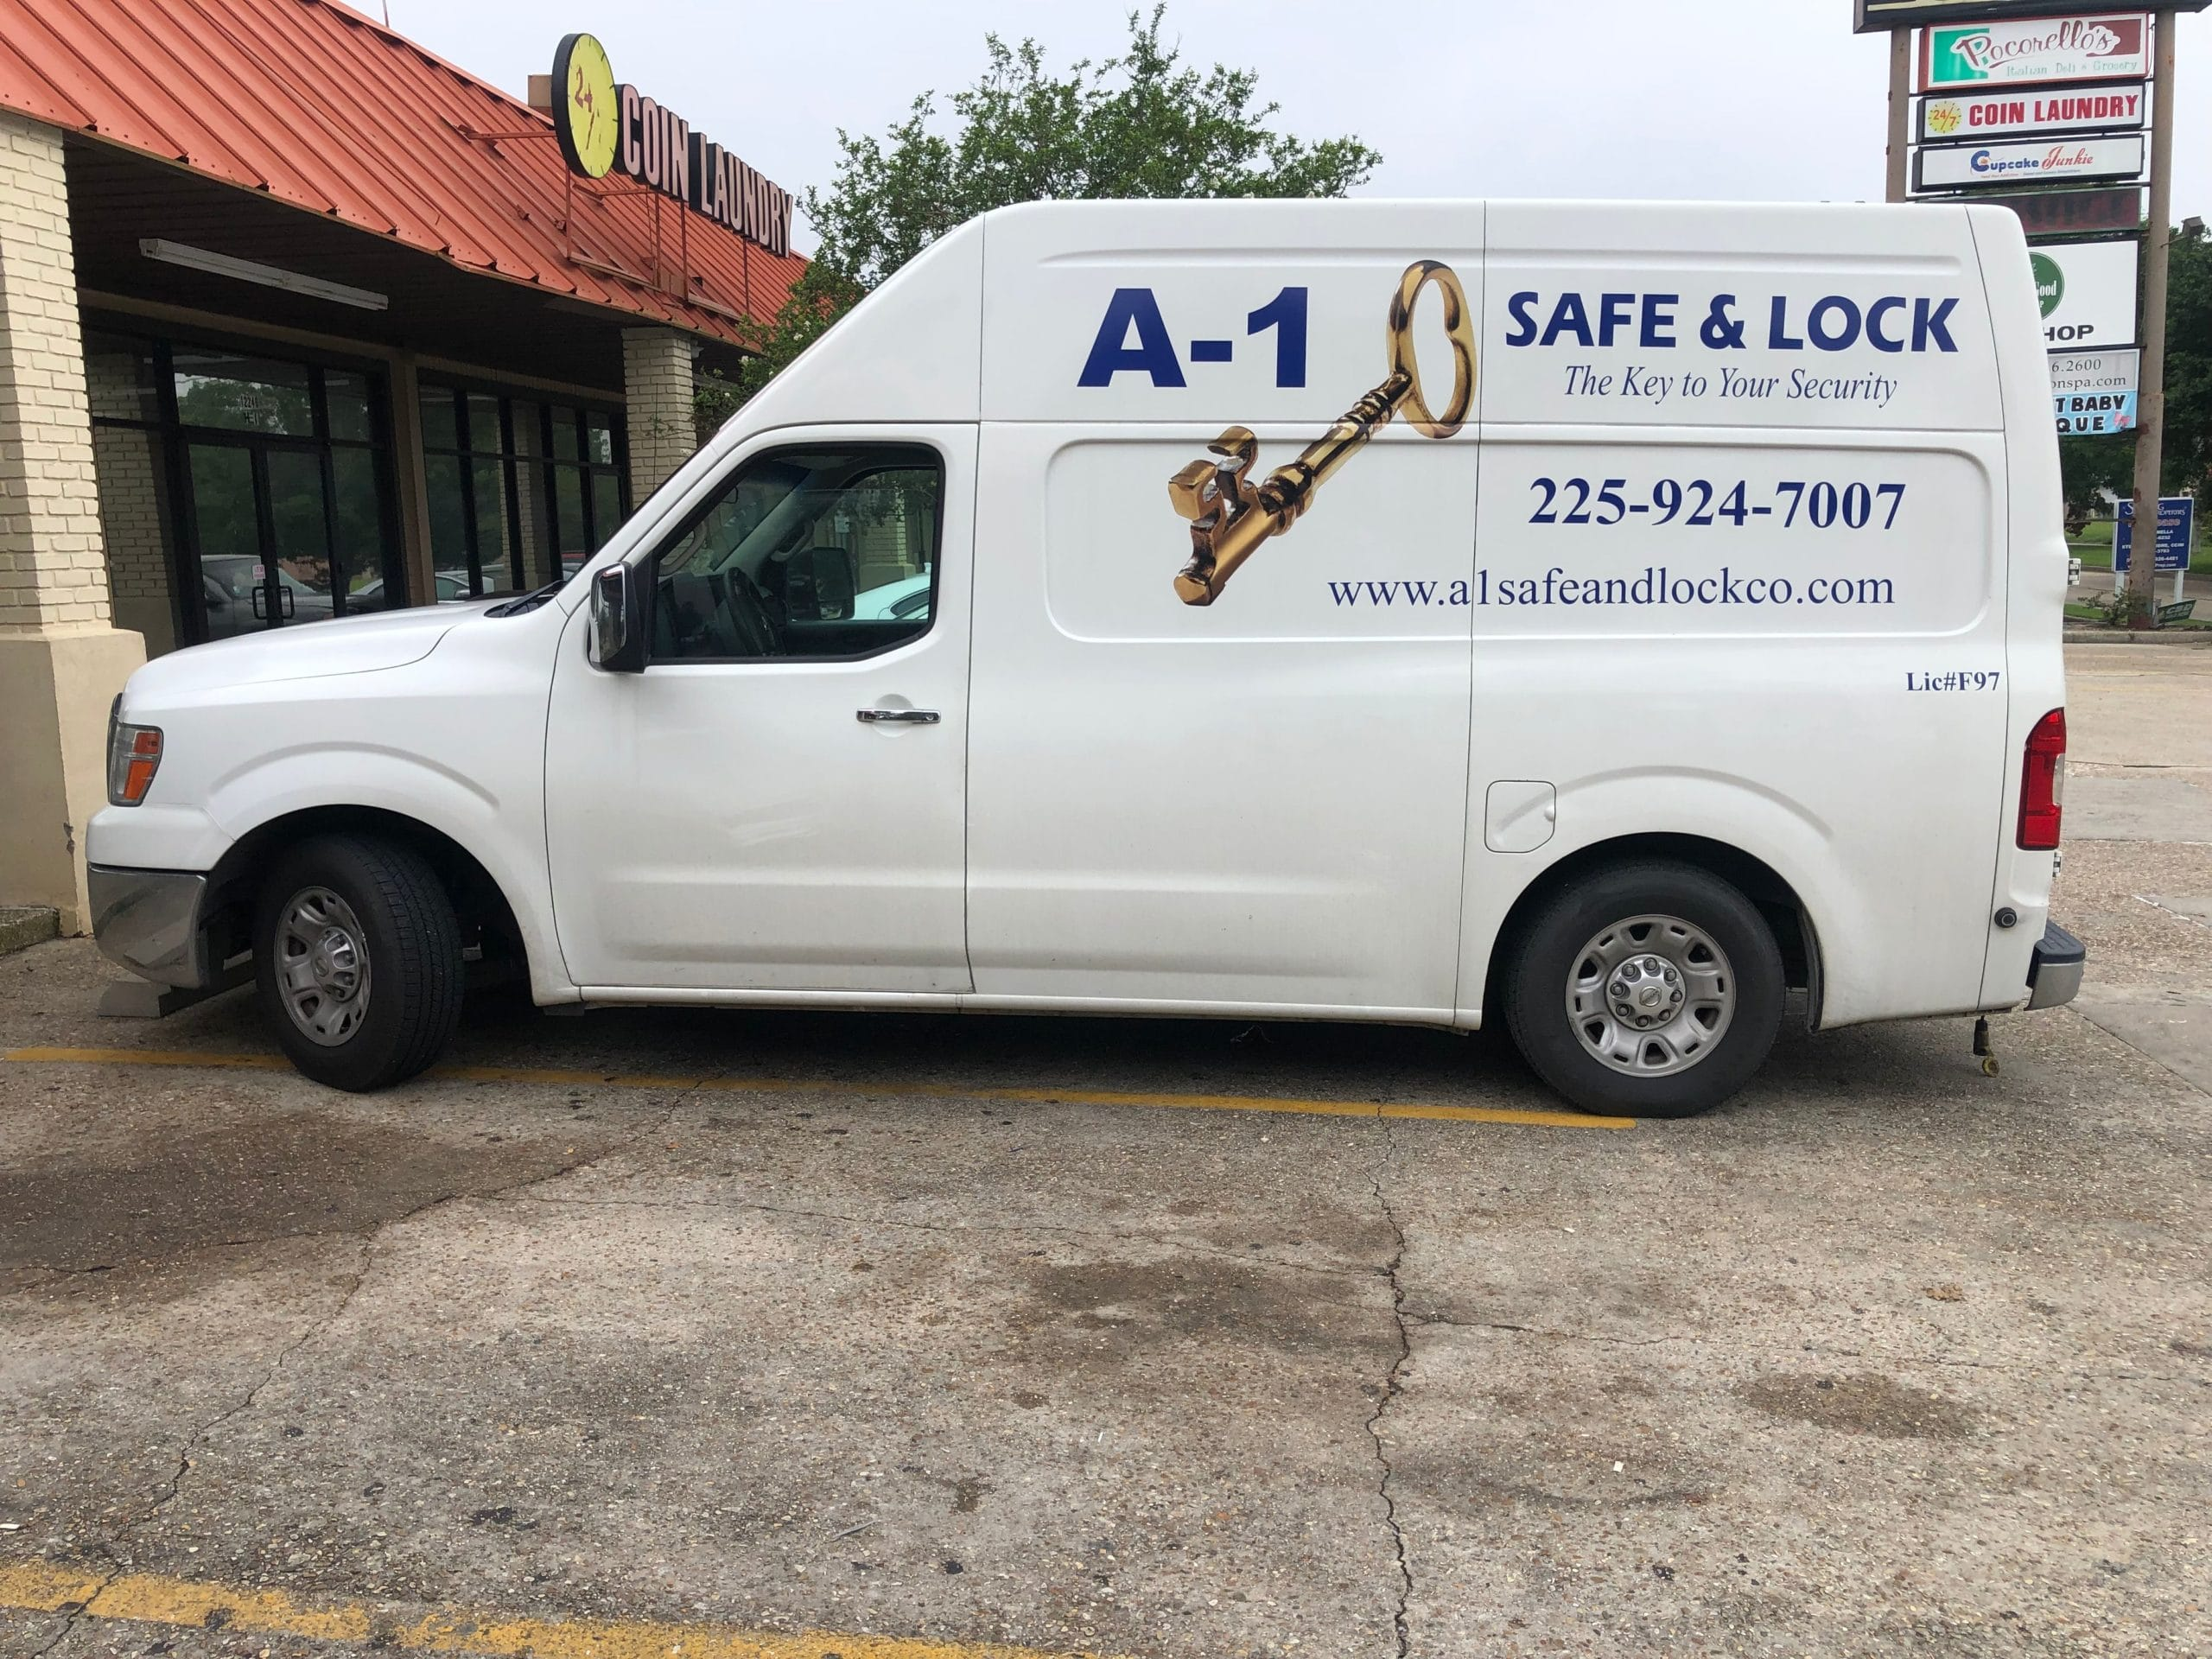 The A1 Safe & Lock mobile locksmith van parked in front of one of our clients.